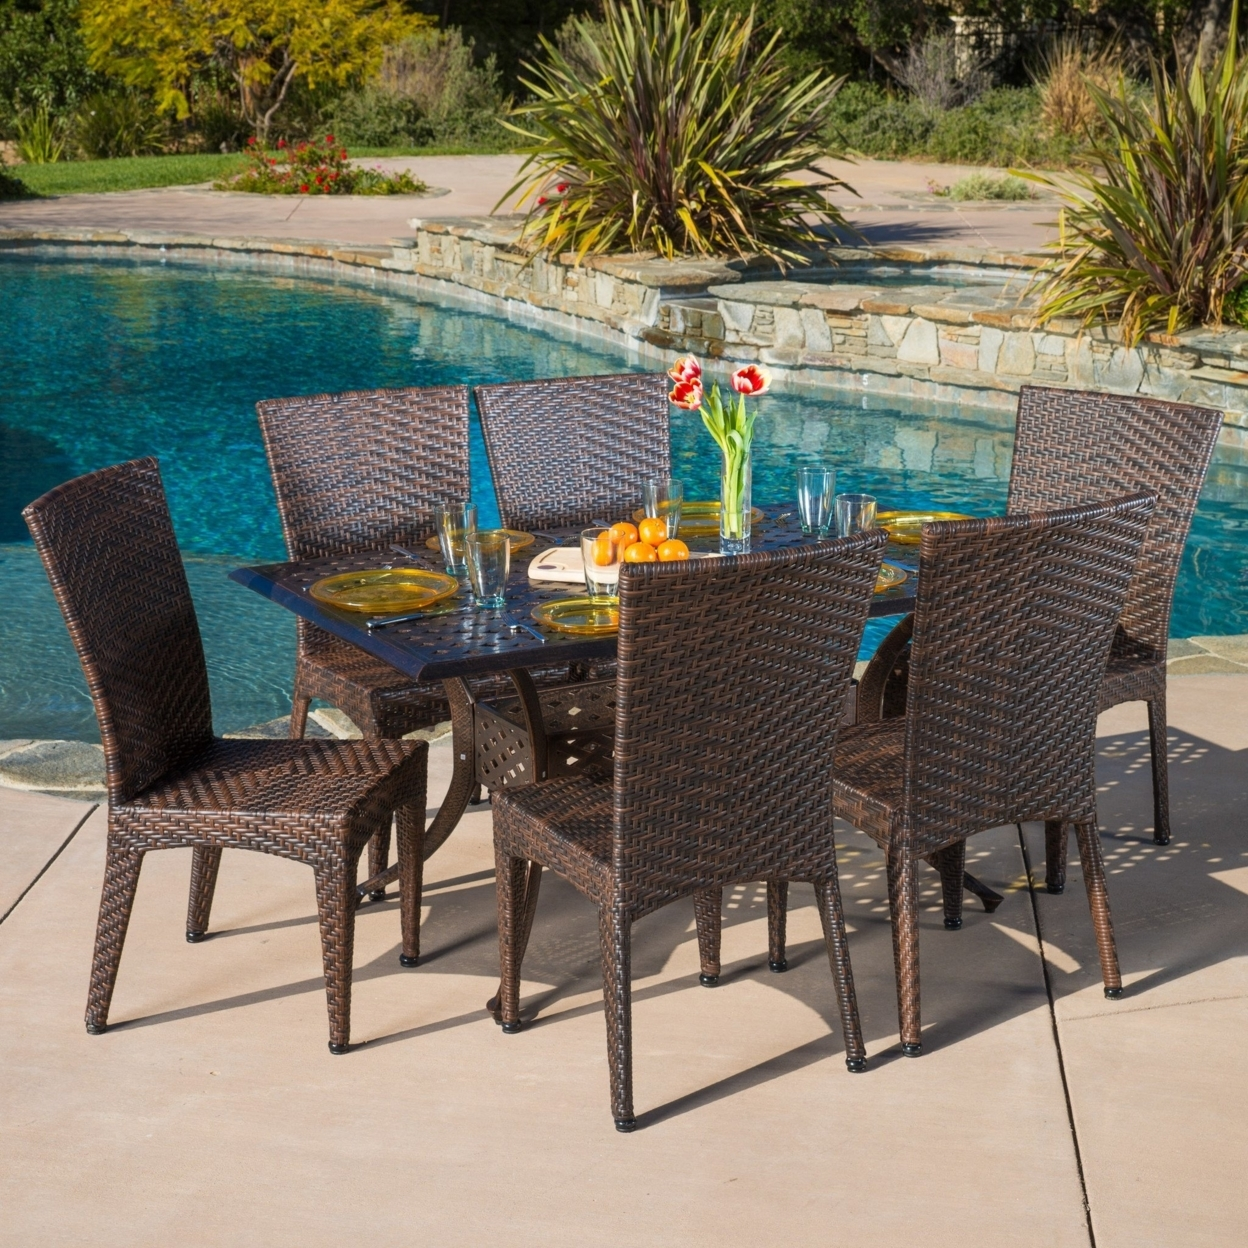 Shore Collection Eei-2588-slv-gry-set 5 Pc Outdoor Patio Dining Set With Grey Plastic Wood Paneling  Black Plastic Foot Caps And Anodized Aluminum Frame In